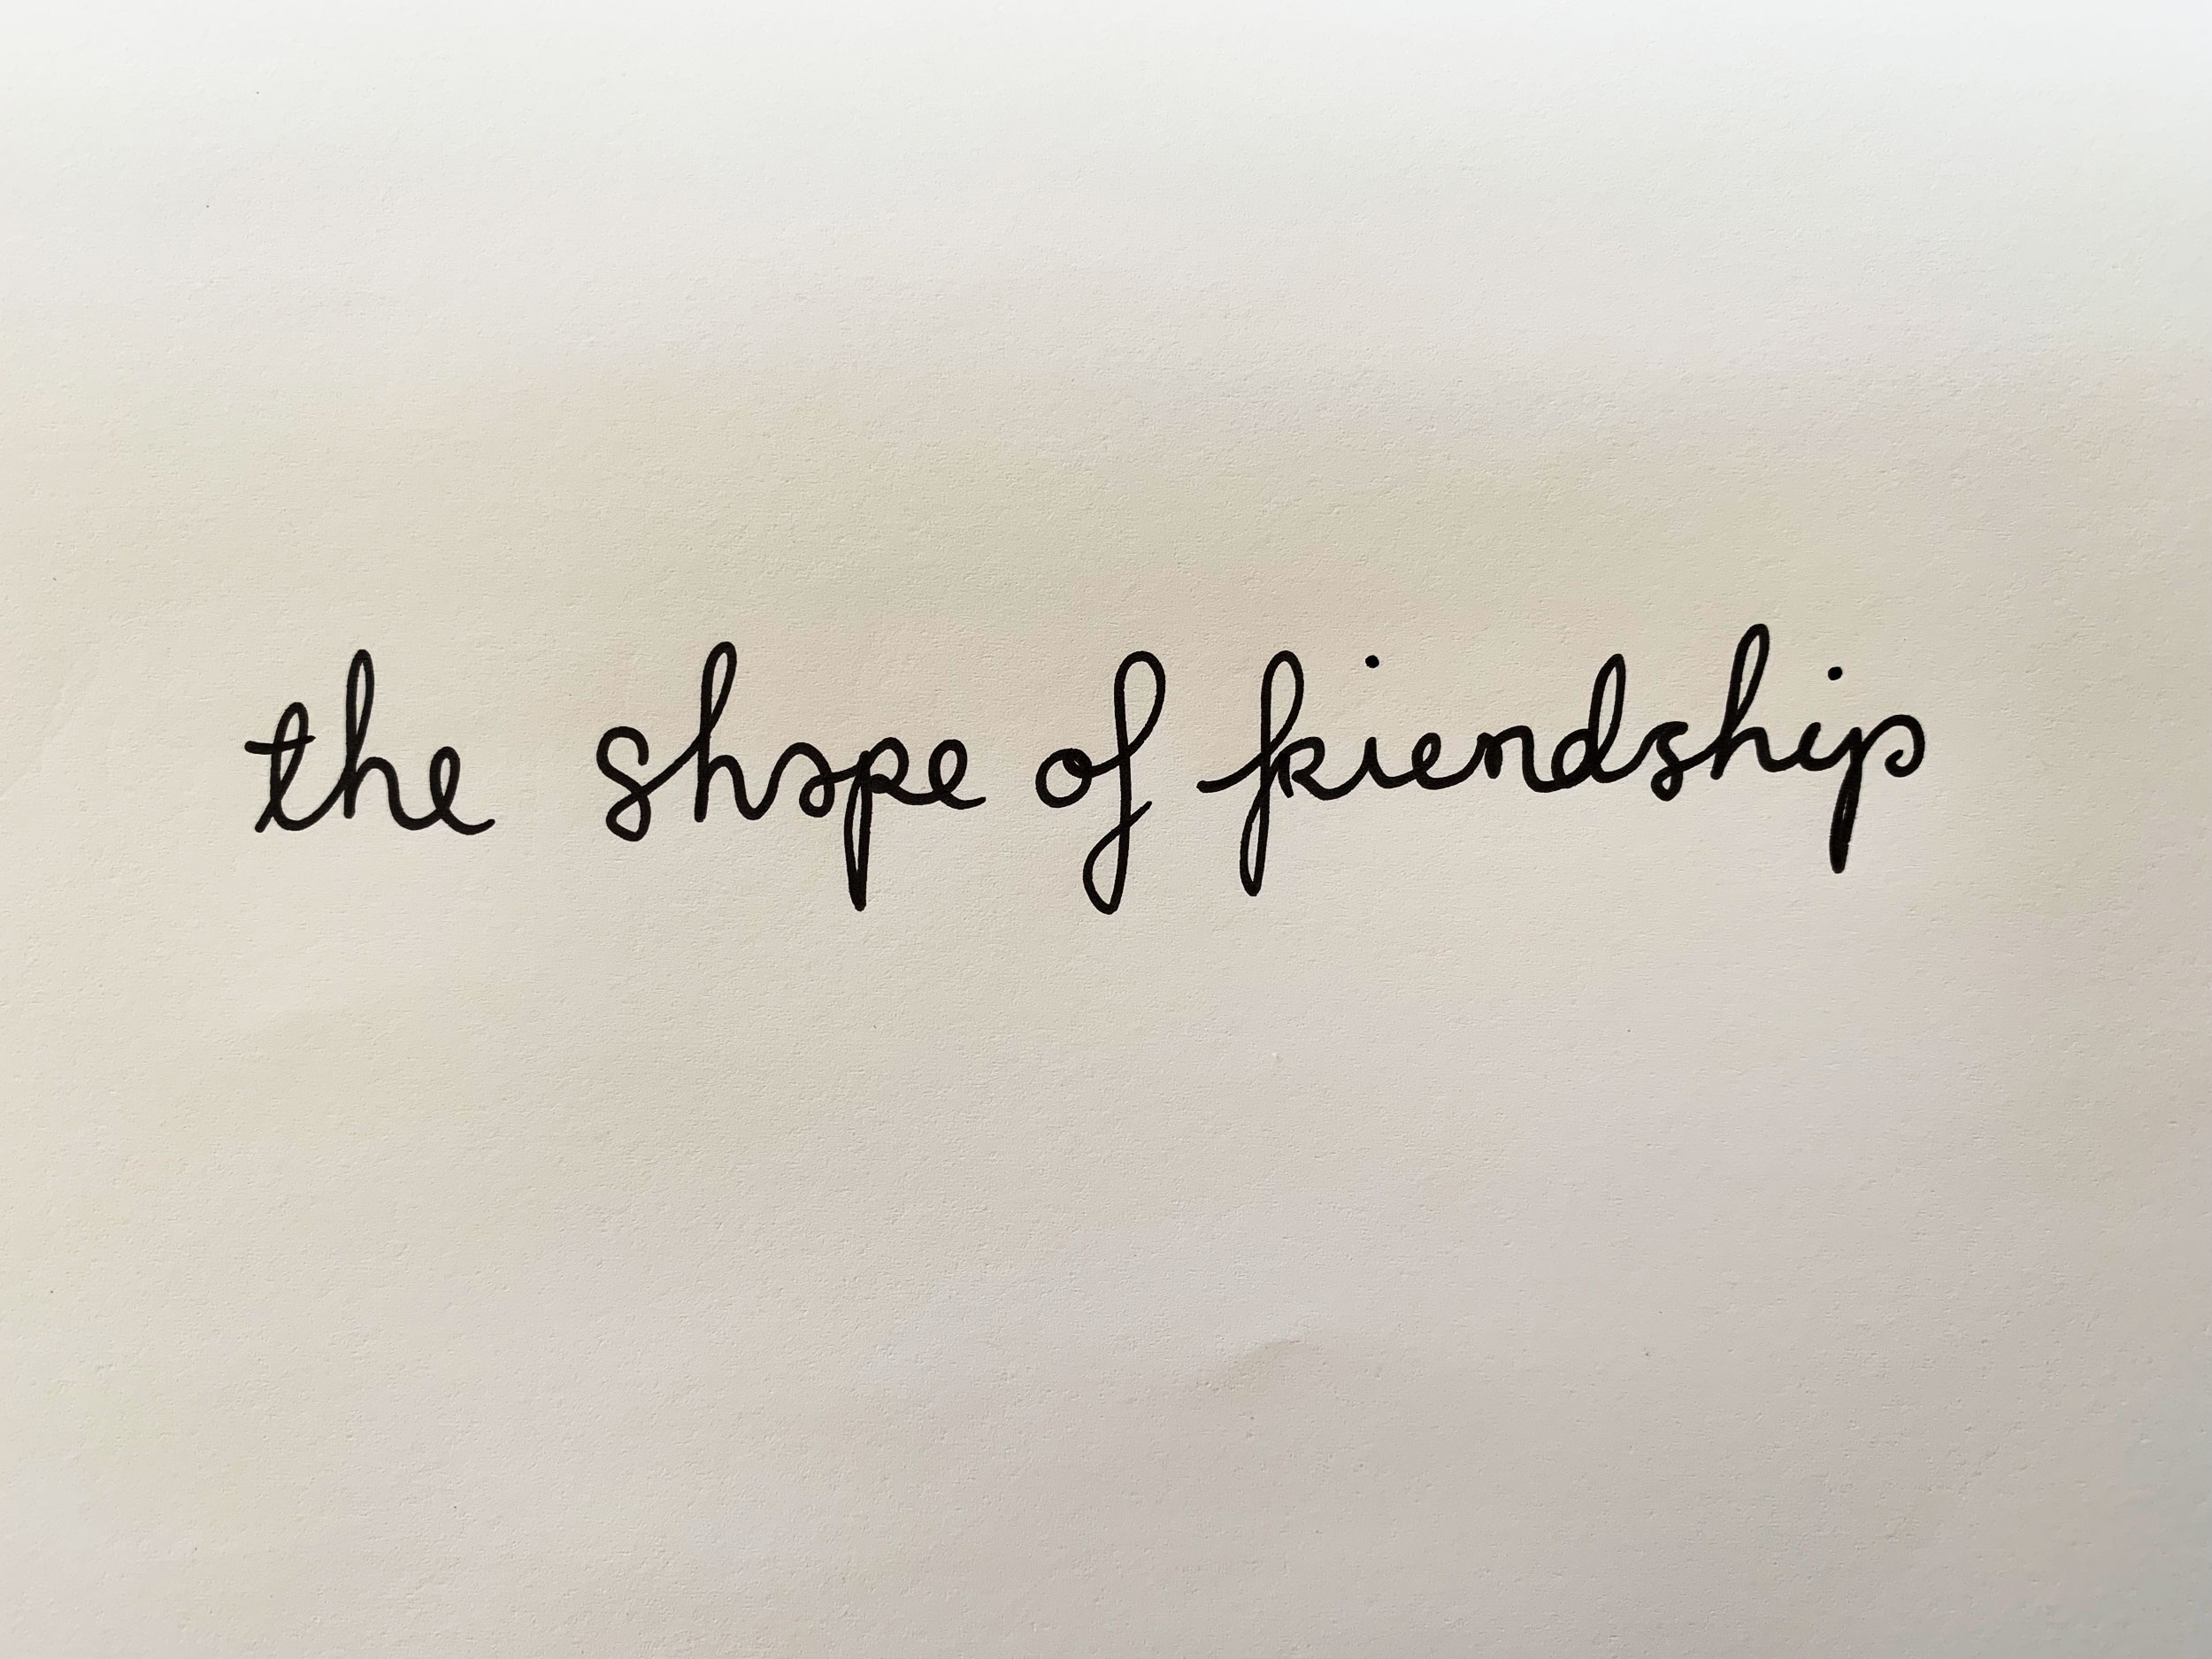 The shape of friendship. Drawing Luke Hockley.